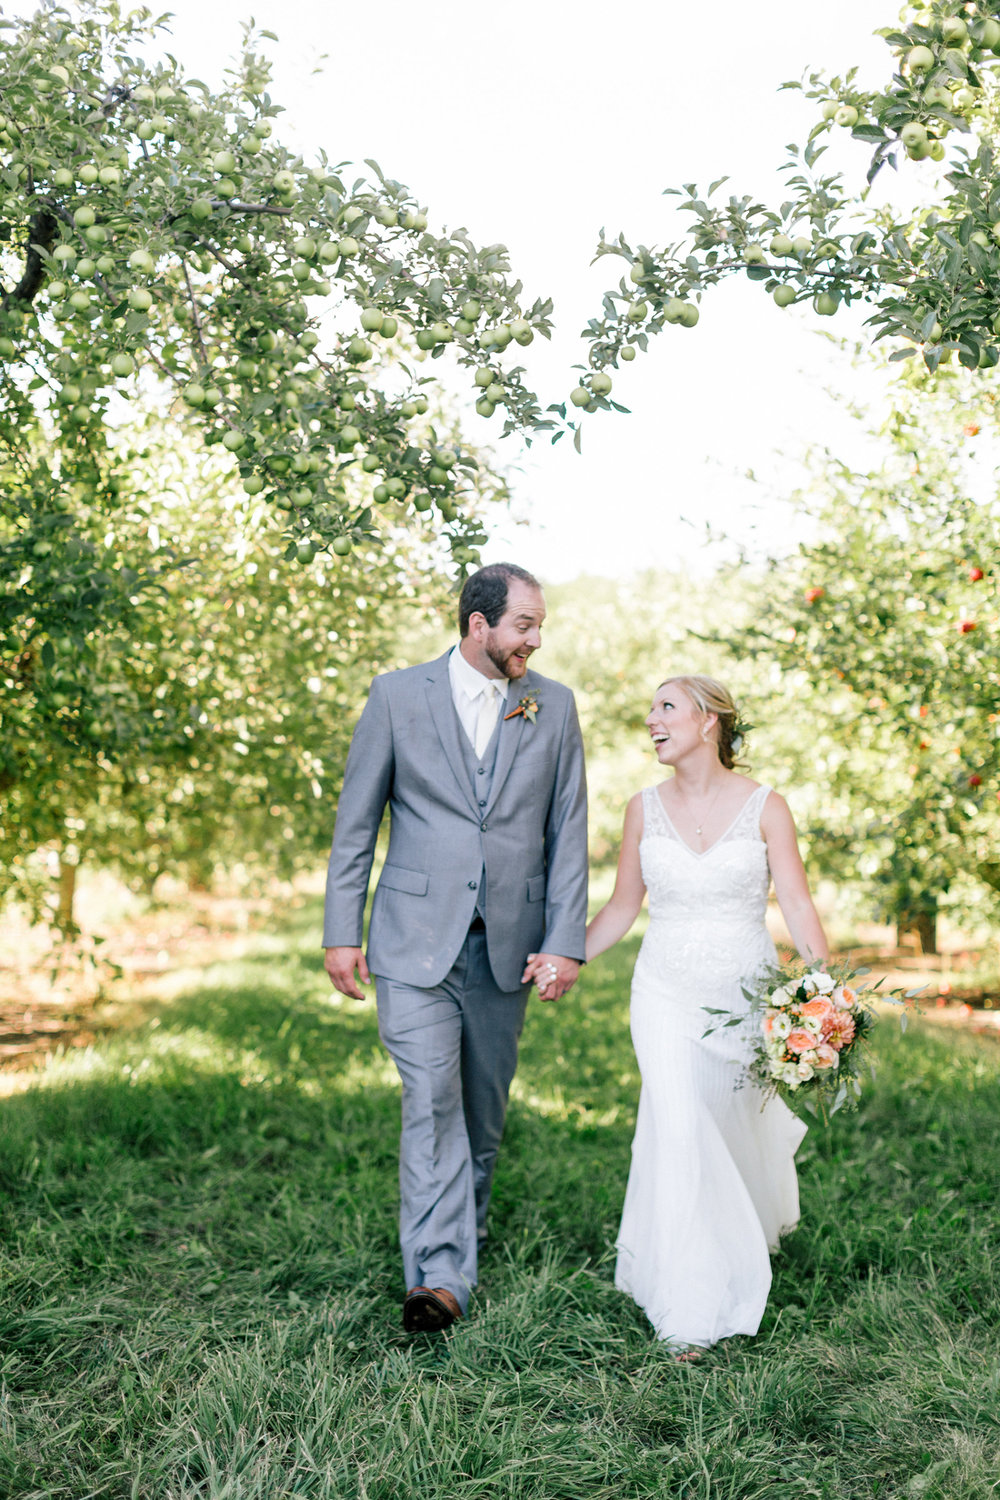 www.allisonhopperstad.com, Minnesota Wedding Photographer, Barn Wedding, Apple Orchard Wedding, Minnesota Harvest Apple Orchard, Summer Wedding, Outdoor Wedding, Wedding in the woods